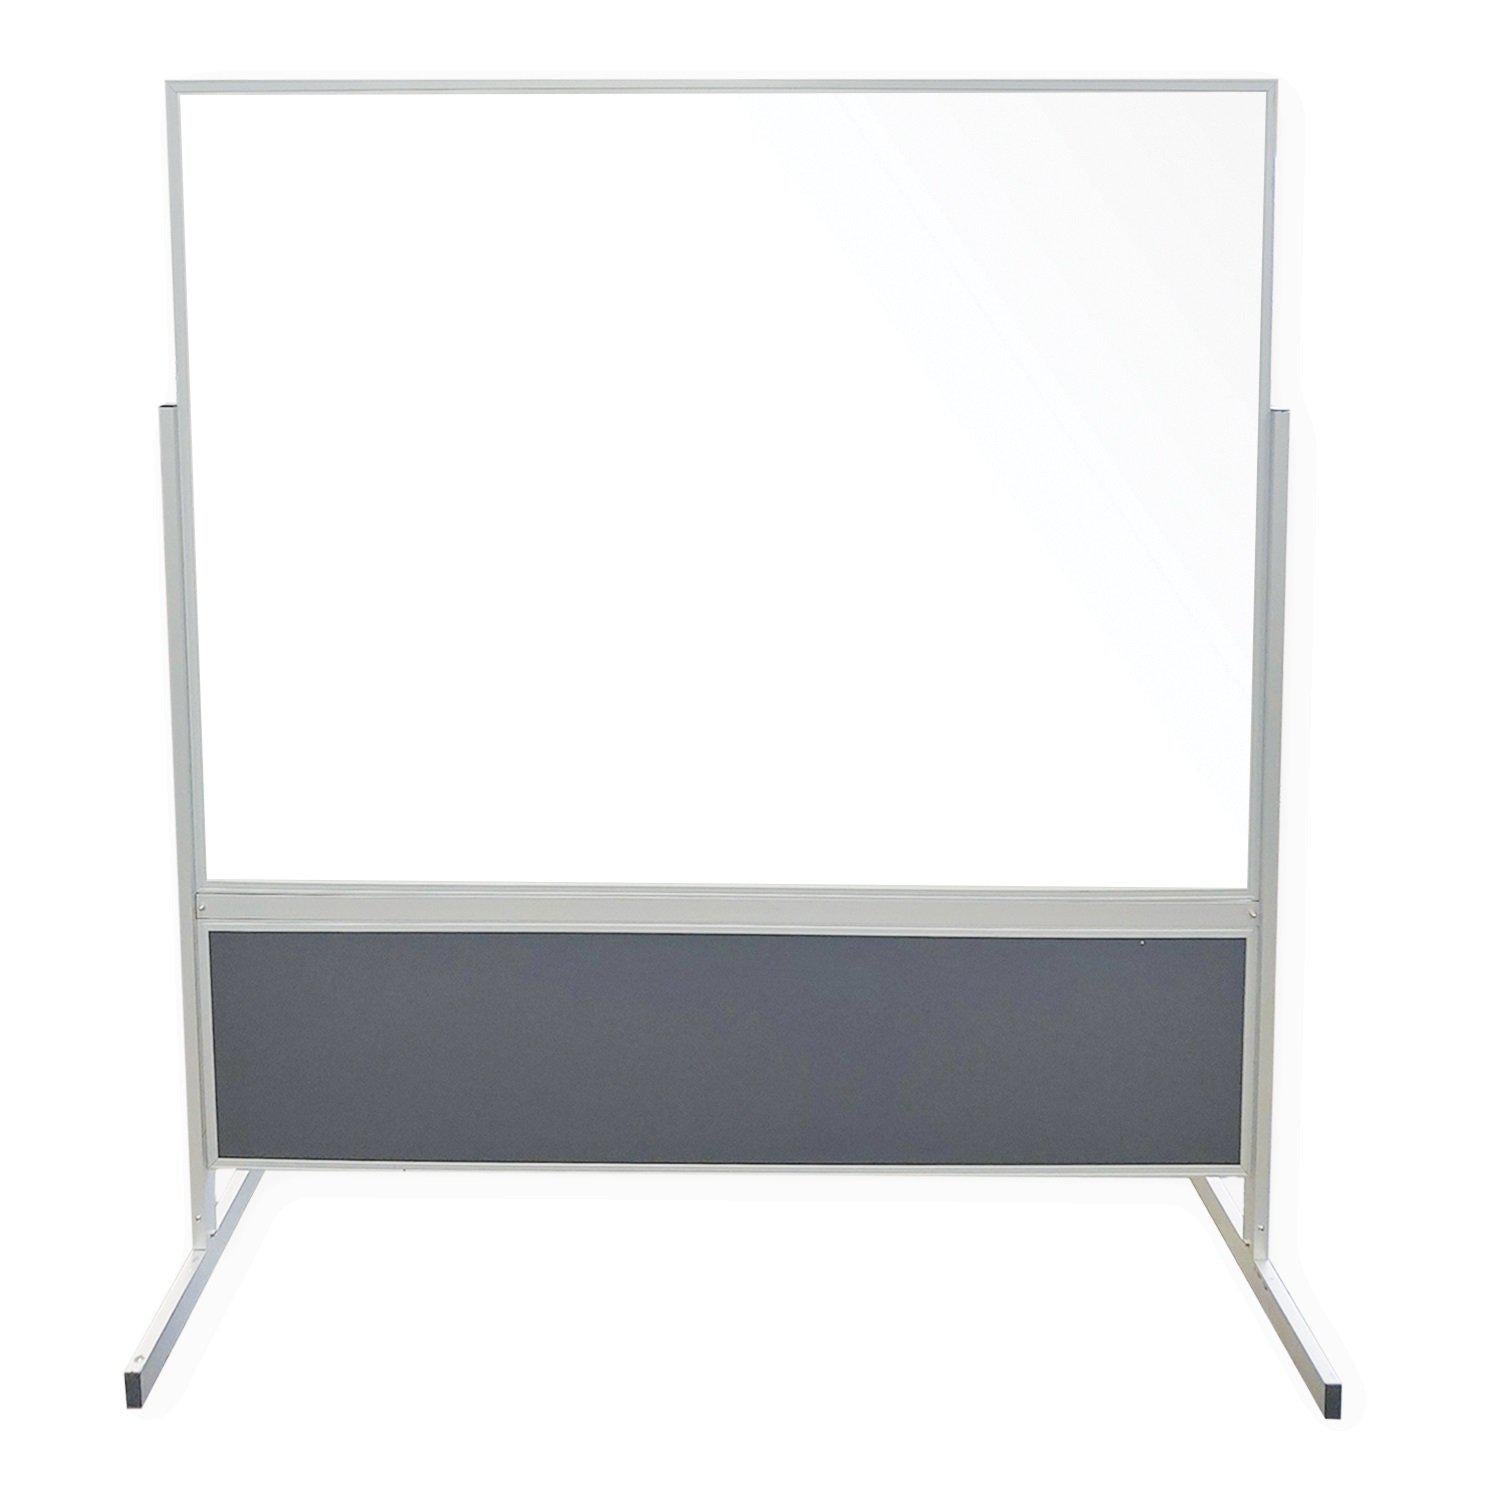 Double-Sided Mobile Partition, Magnetic Porcelain Whiteboard and Vinyl Tackboard with Aluminum Frame, 6' H x 4' W